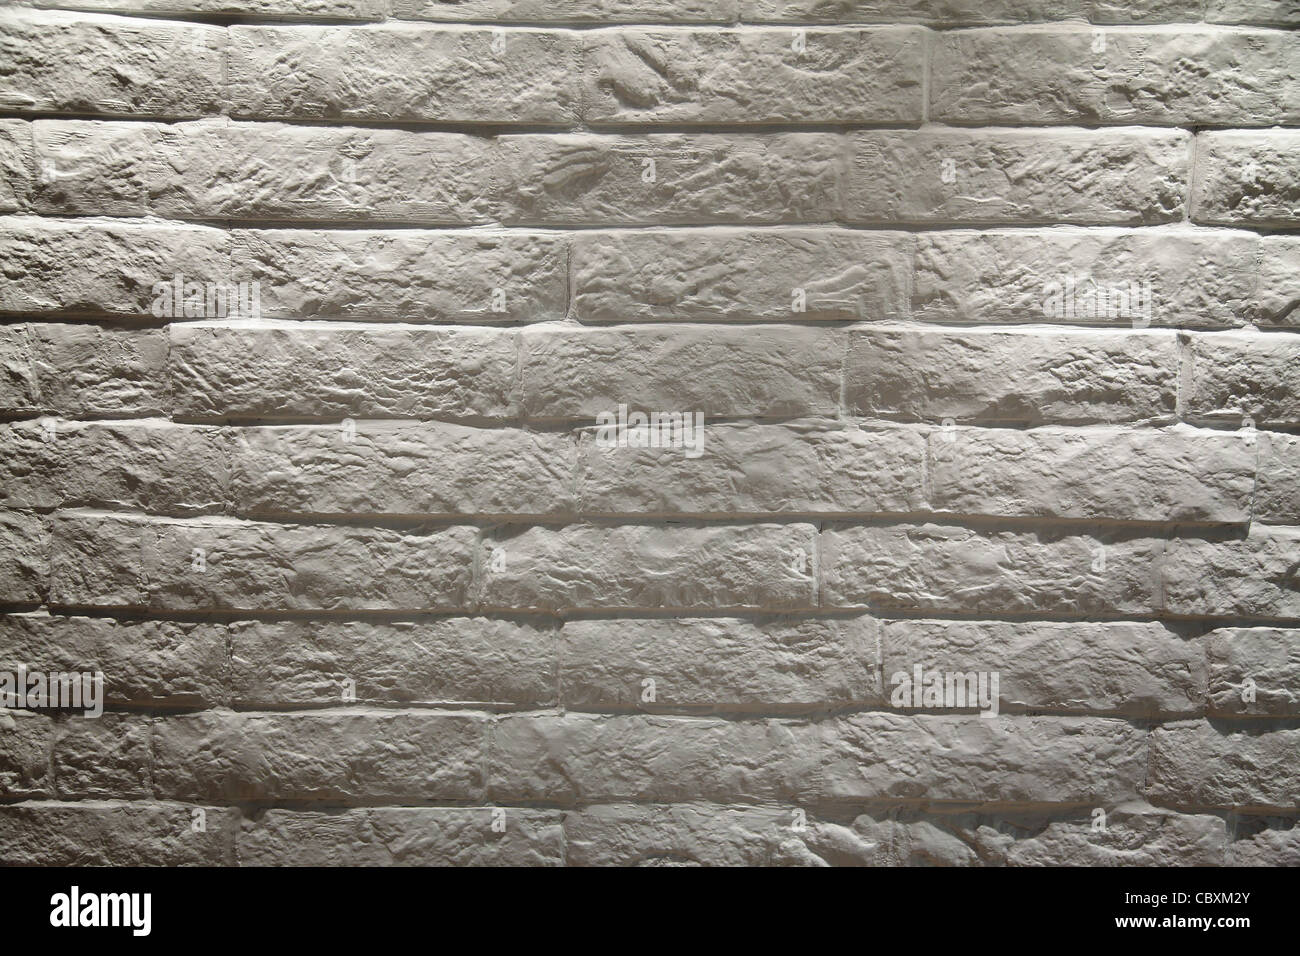 White brick wall background - Stock Image